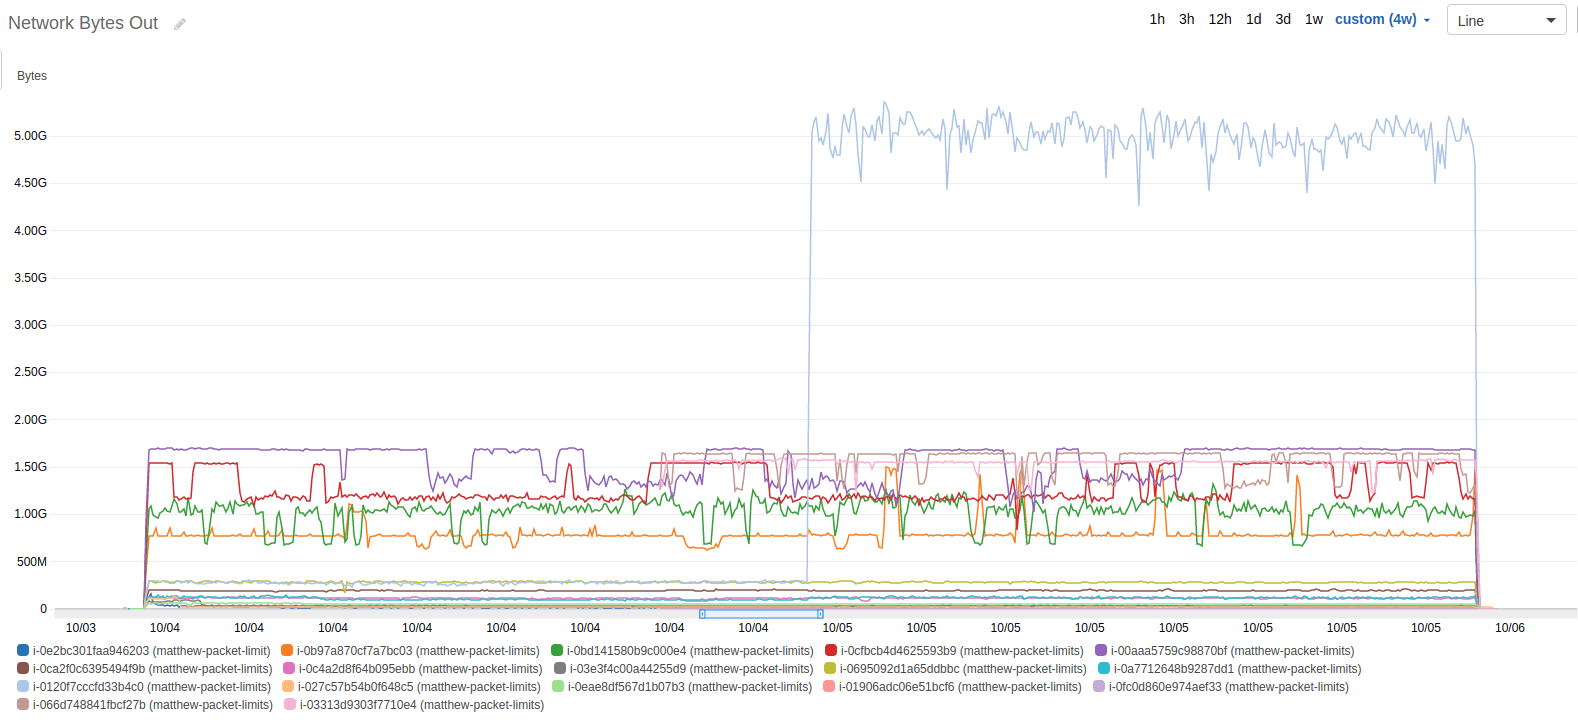 AWS Cloudwatch graph of Network Out (bytes) during test